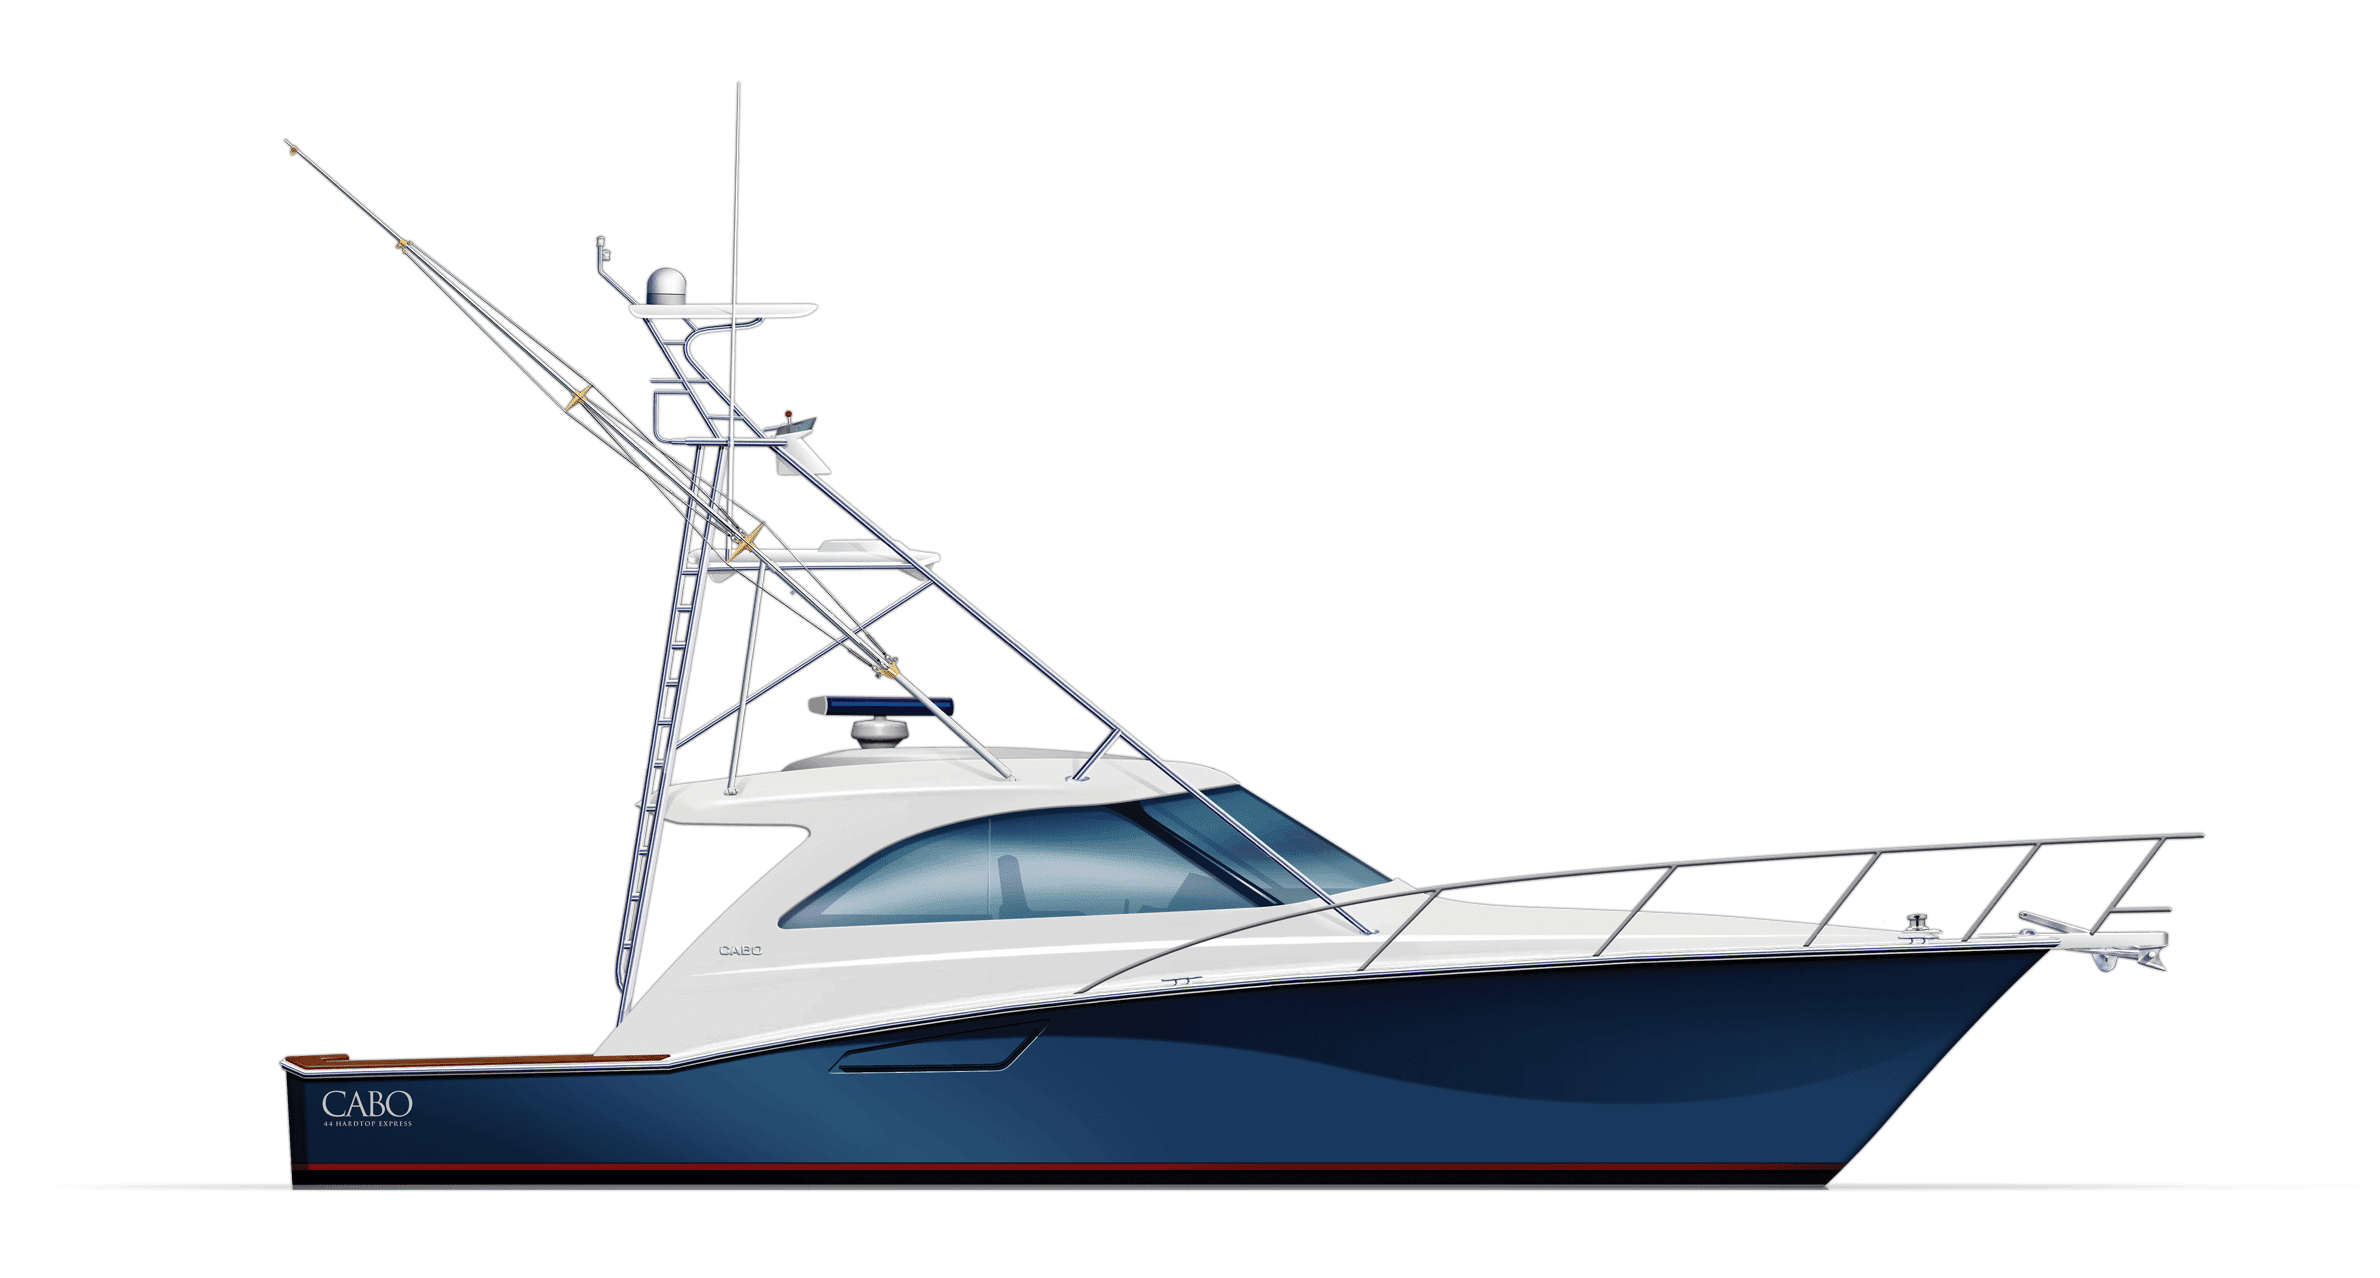 Boat PNG images free download